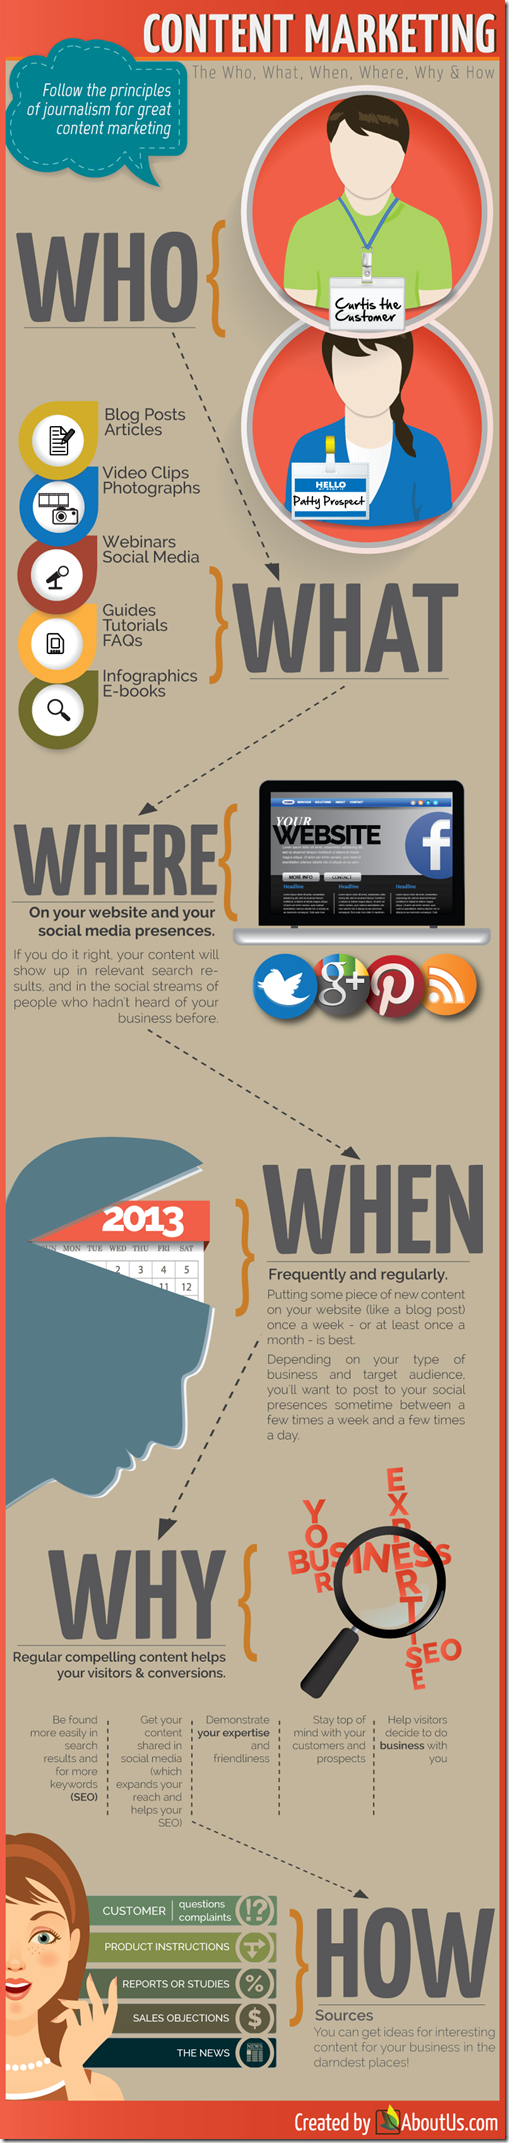 ContentMarketing_Infographic